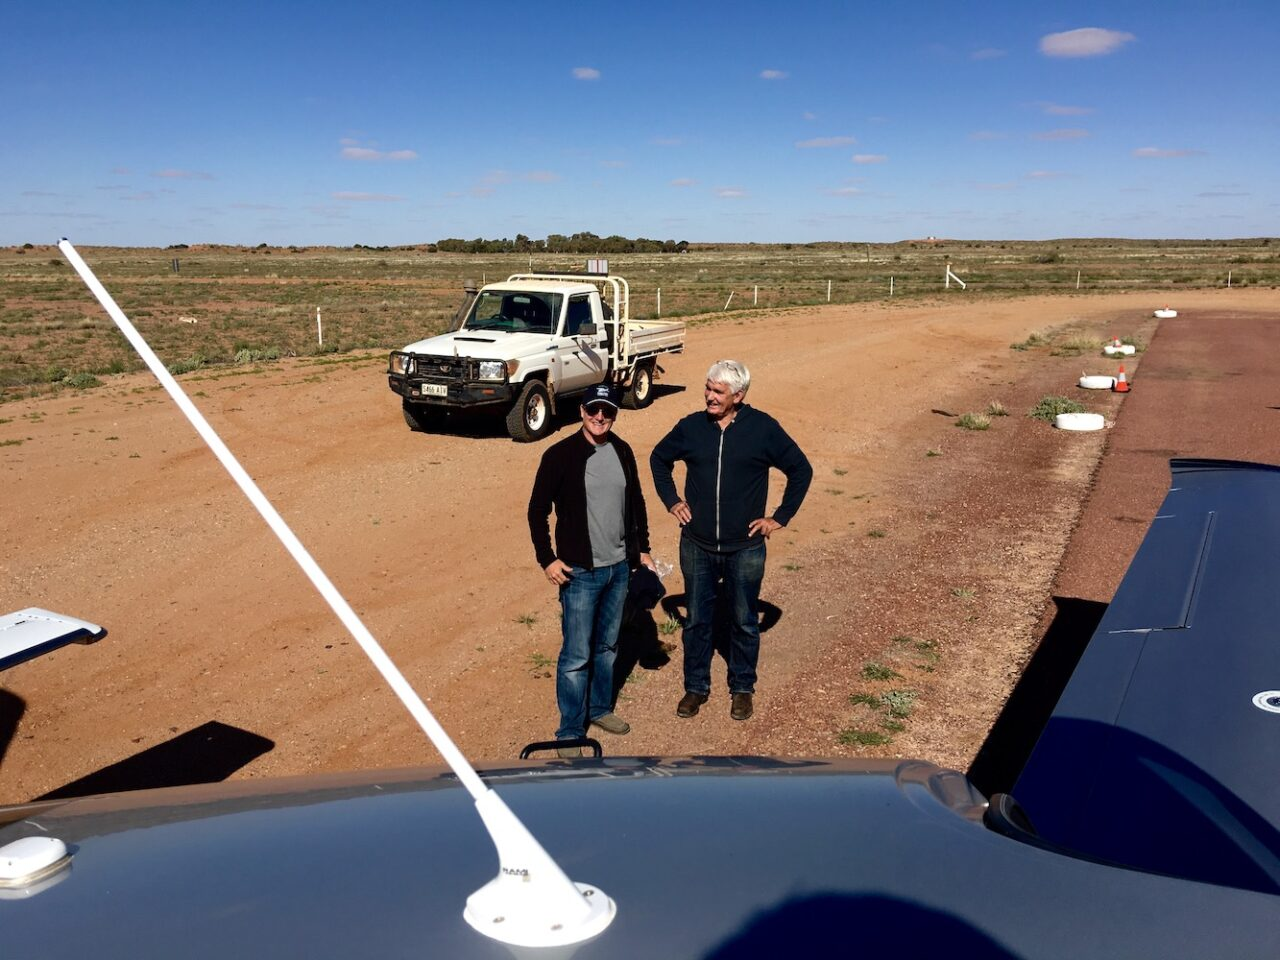 U gotta go visit Trevor_s town at William Creek – it_s just fun – outback style